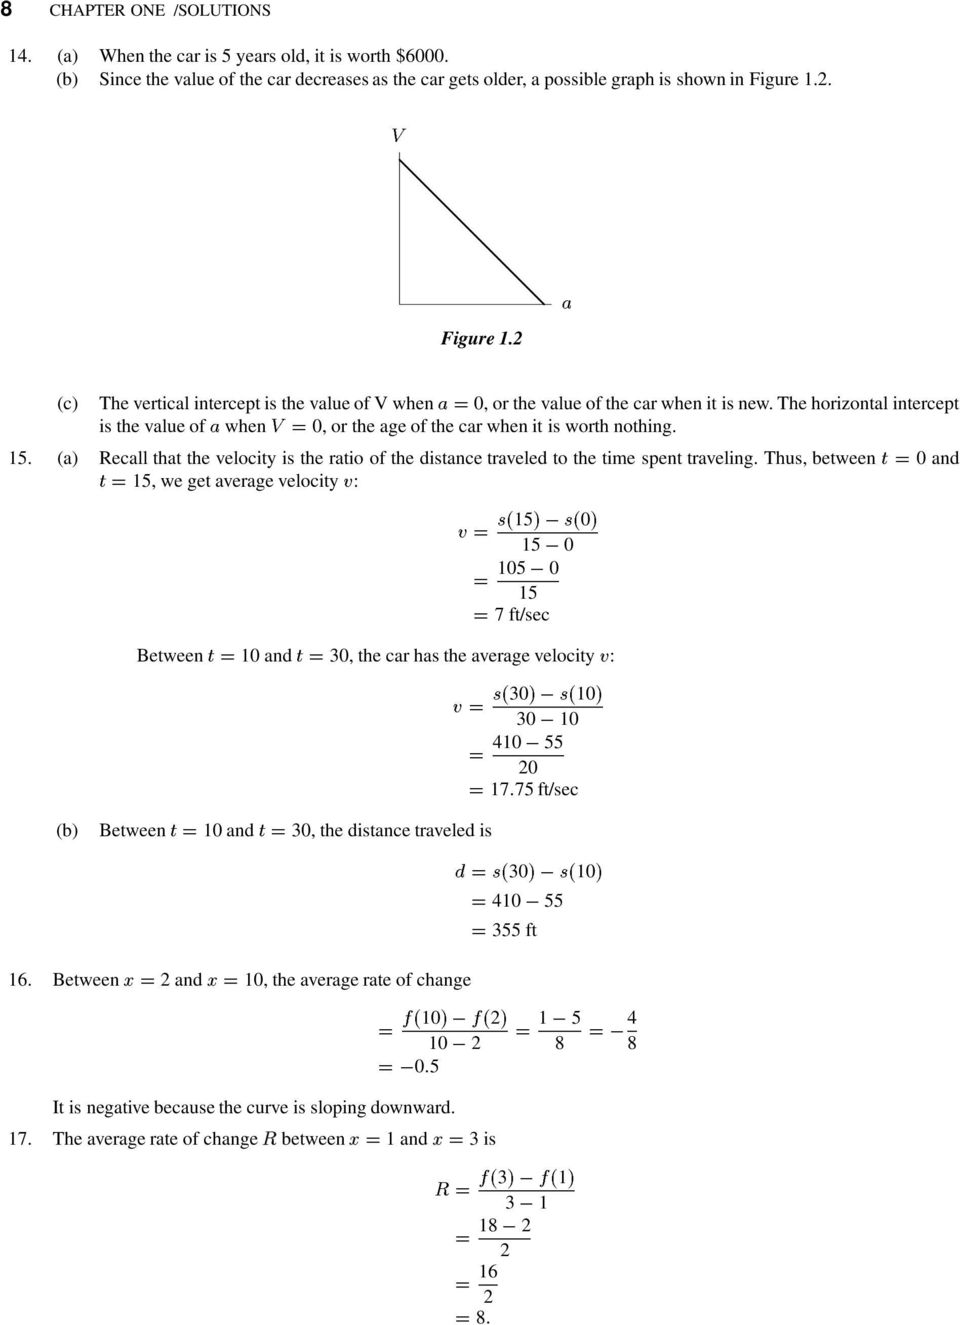 (a) Recall that the velocity is the ratio of the distance traveled to the